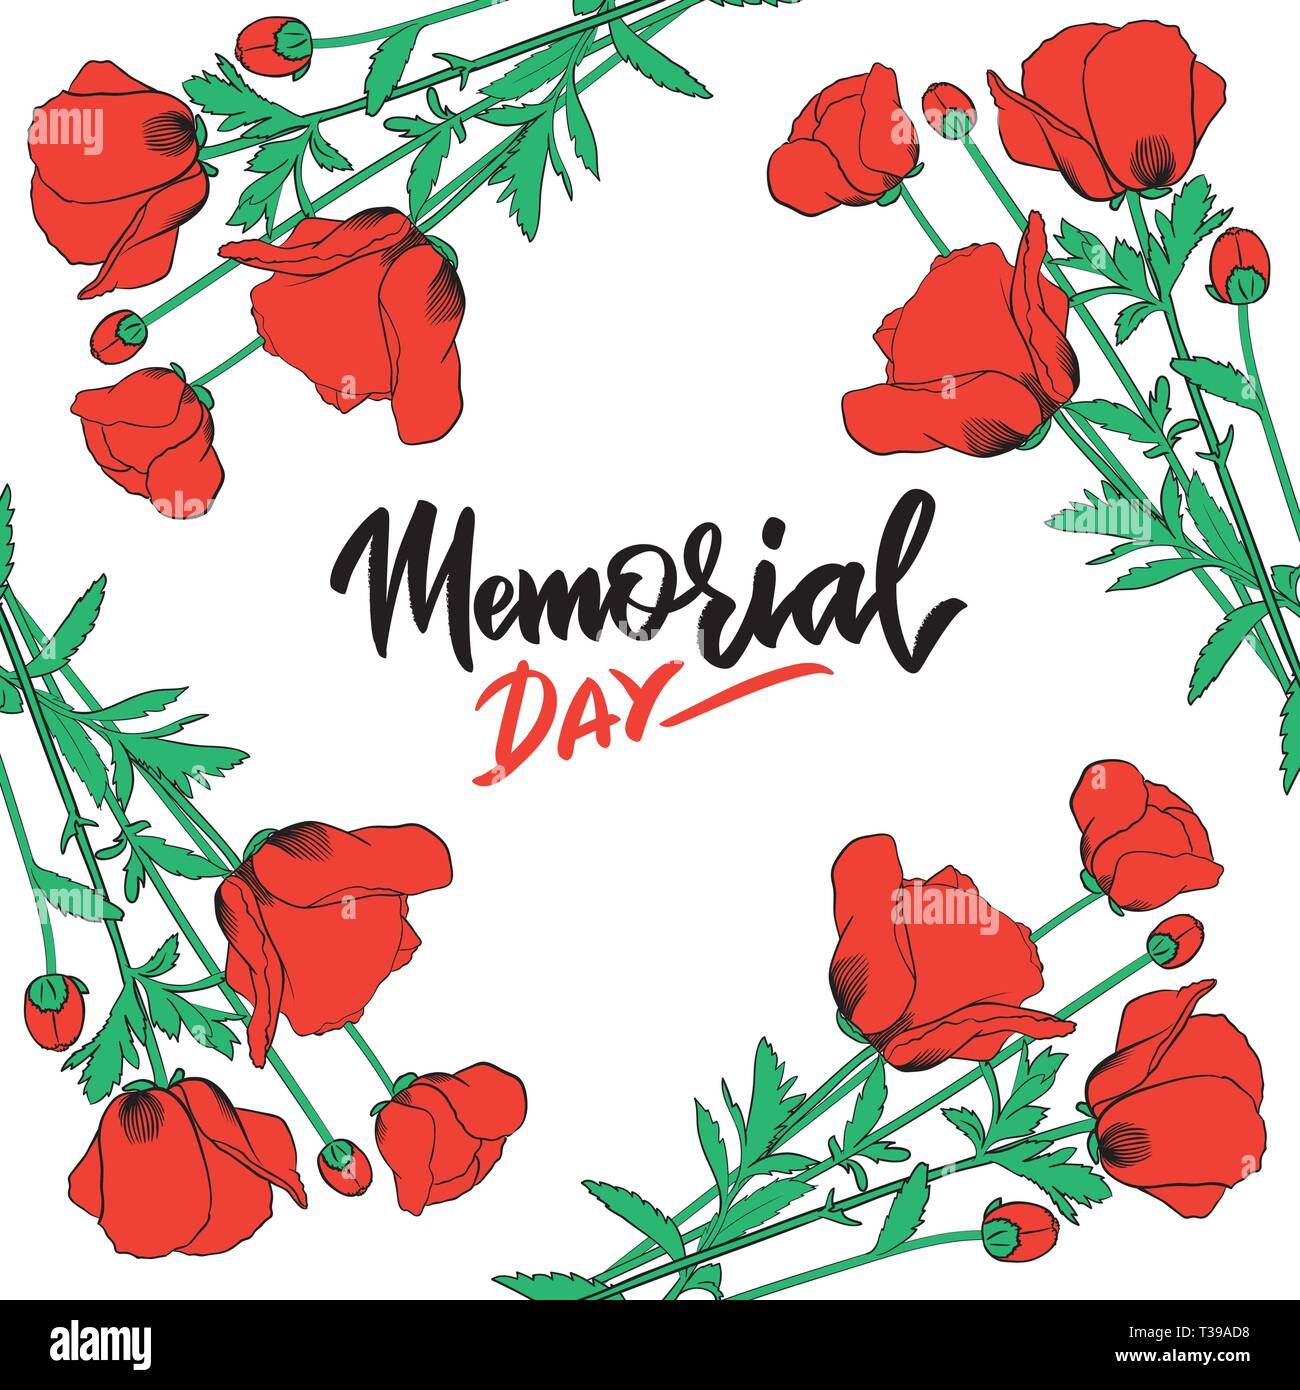 Memorial day typography, hand-lettering, calligraphy in red poppy flower frame. Greeting card, poster, banner, flyer, invitation in retro colors. Vect - Stock Vector